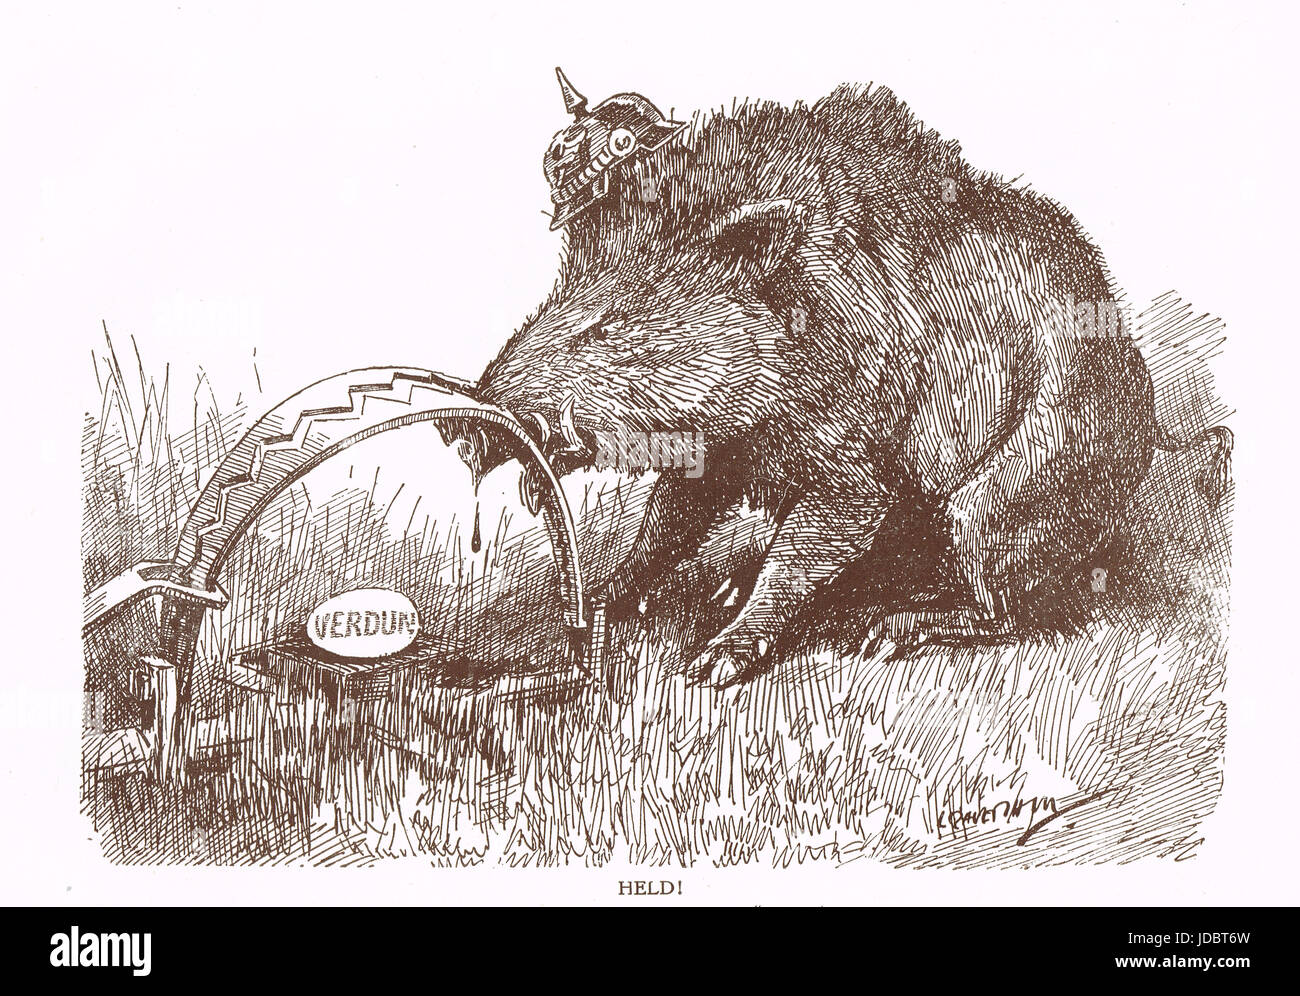 Punch cartoon by Leonard Raven-Hill German Hog with nose in trap, Battle of Verdun, 1916 Stock Photo